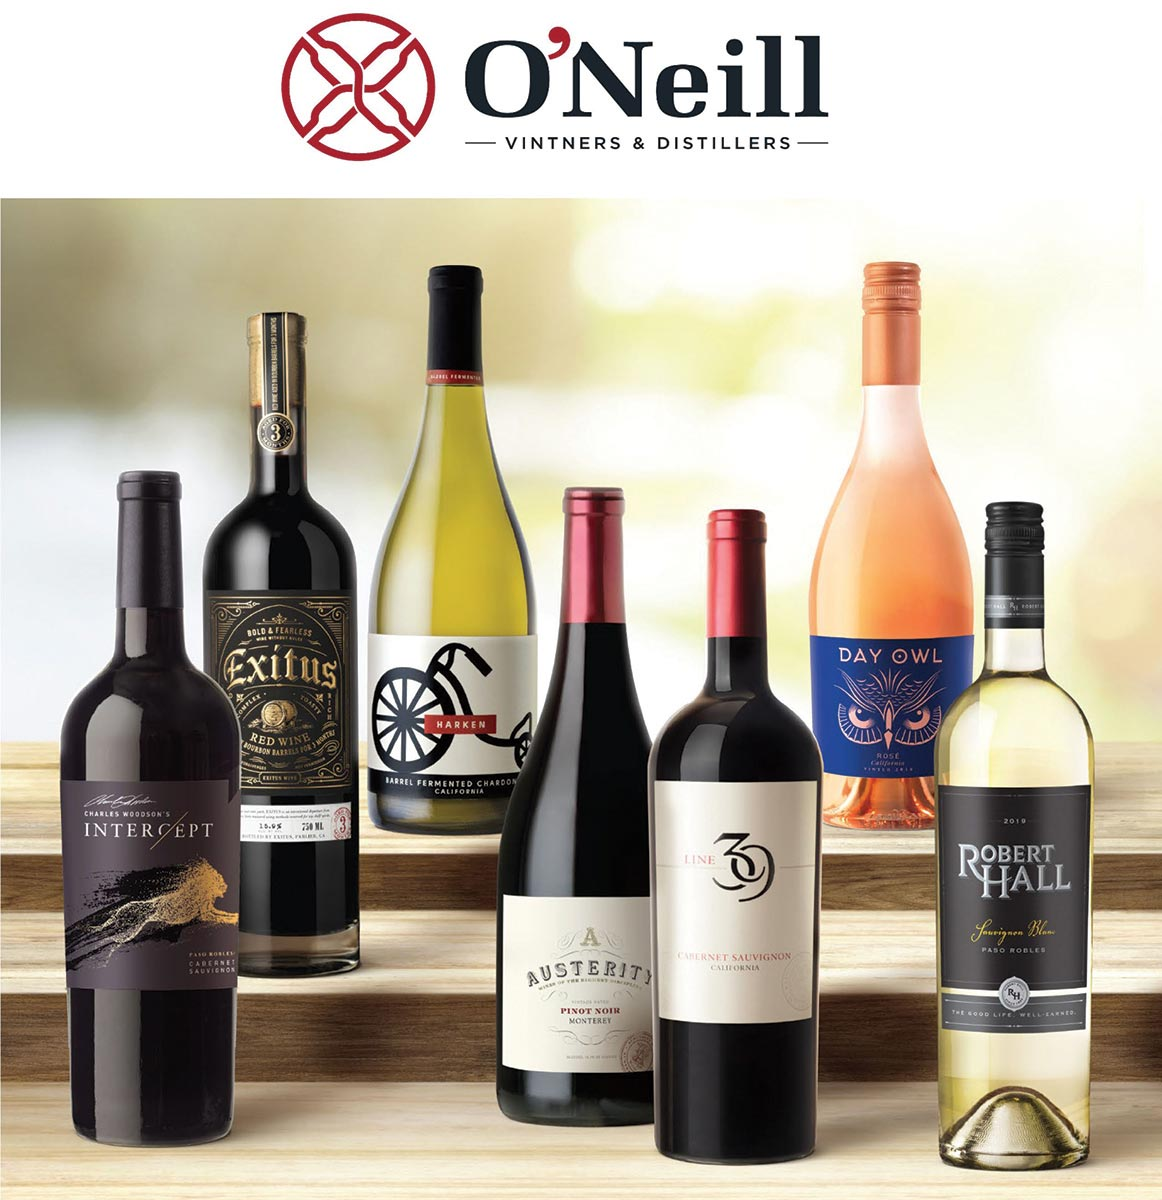 O'Neill Vintners & Distillers Full Portfolio Now in Connecticut